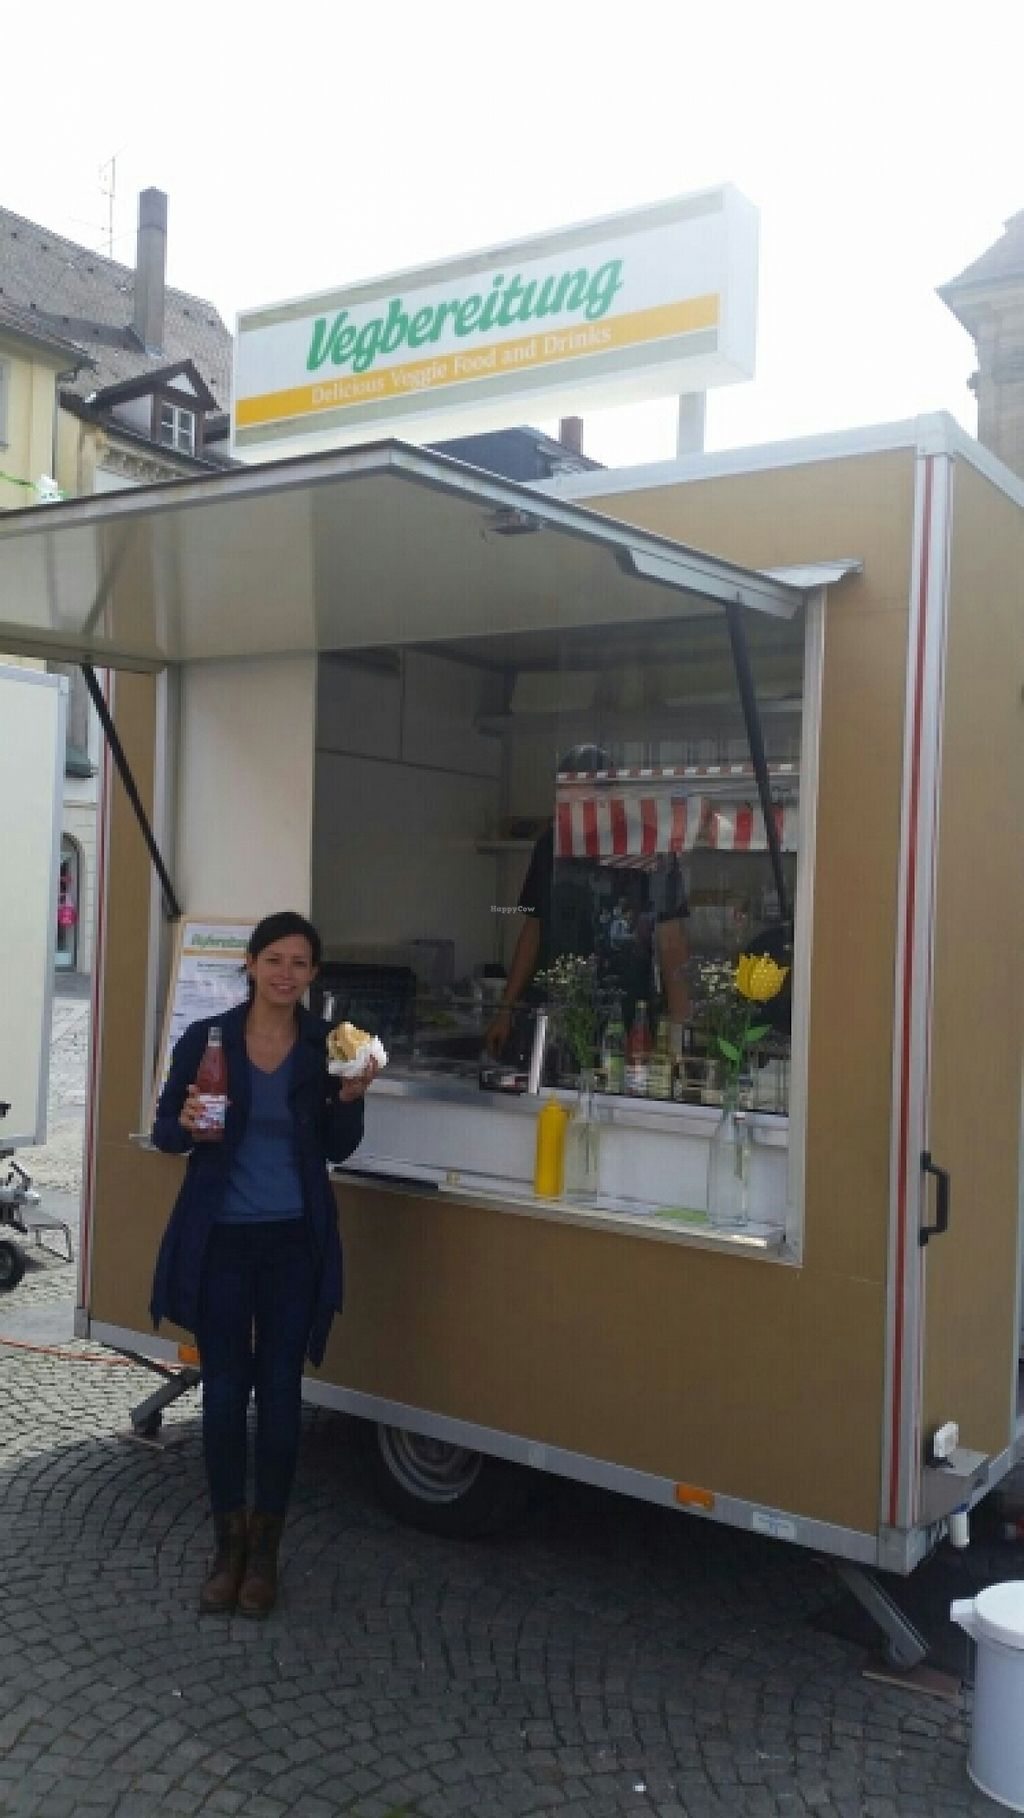 """Photo of Vegbereitung - Food Trailer  by <a href=""""/members/profile/Sonnenschein"""">Sonnenschein</a> <br/>vegbereitung; -) <br/> April 19, 2016  - <a href='/contact/abuse/image/72608/145185'>Report</a>"""